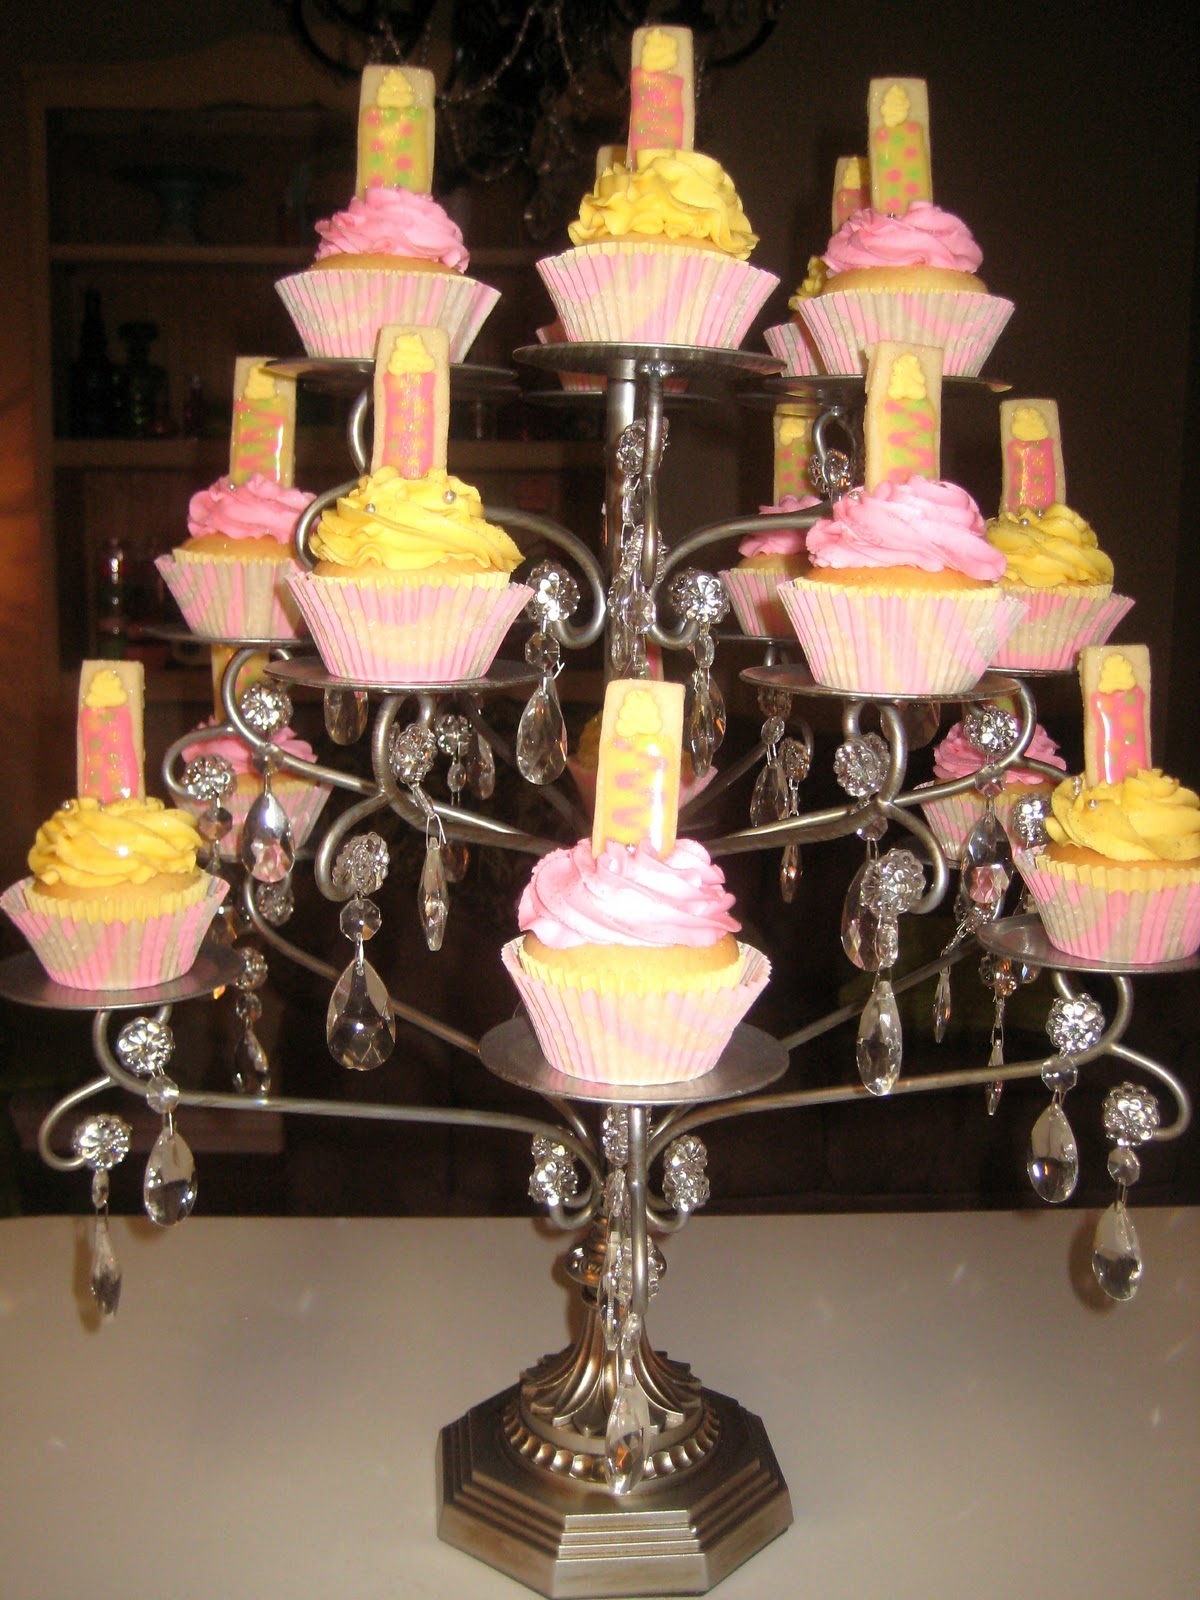 More than chocolate chandelier cupcake stand chandelier cupcake stand arubaitofo Image collections